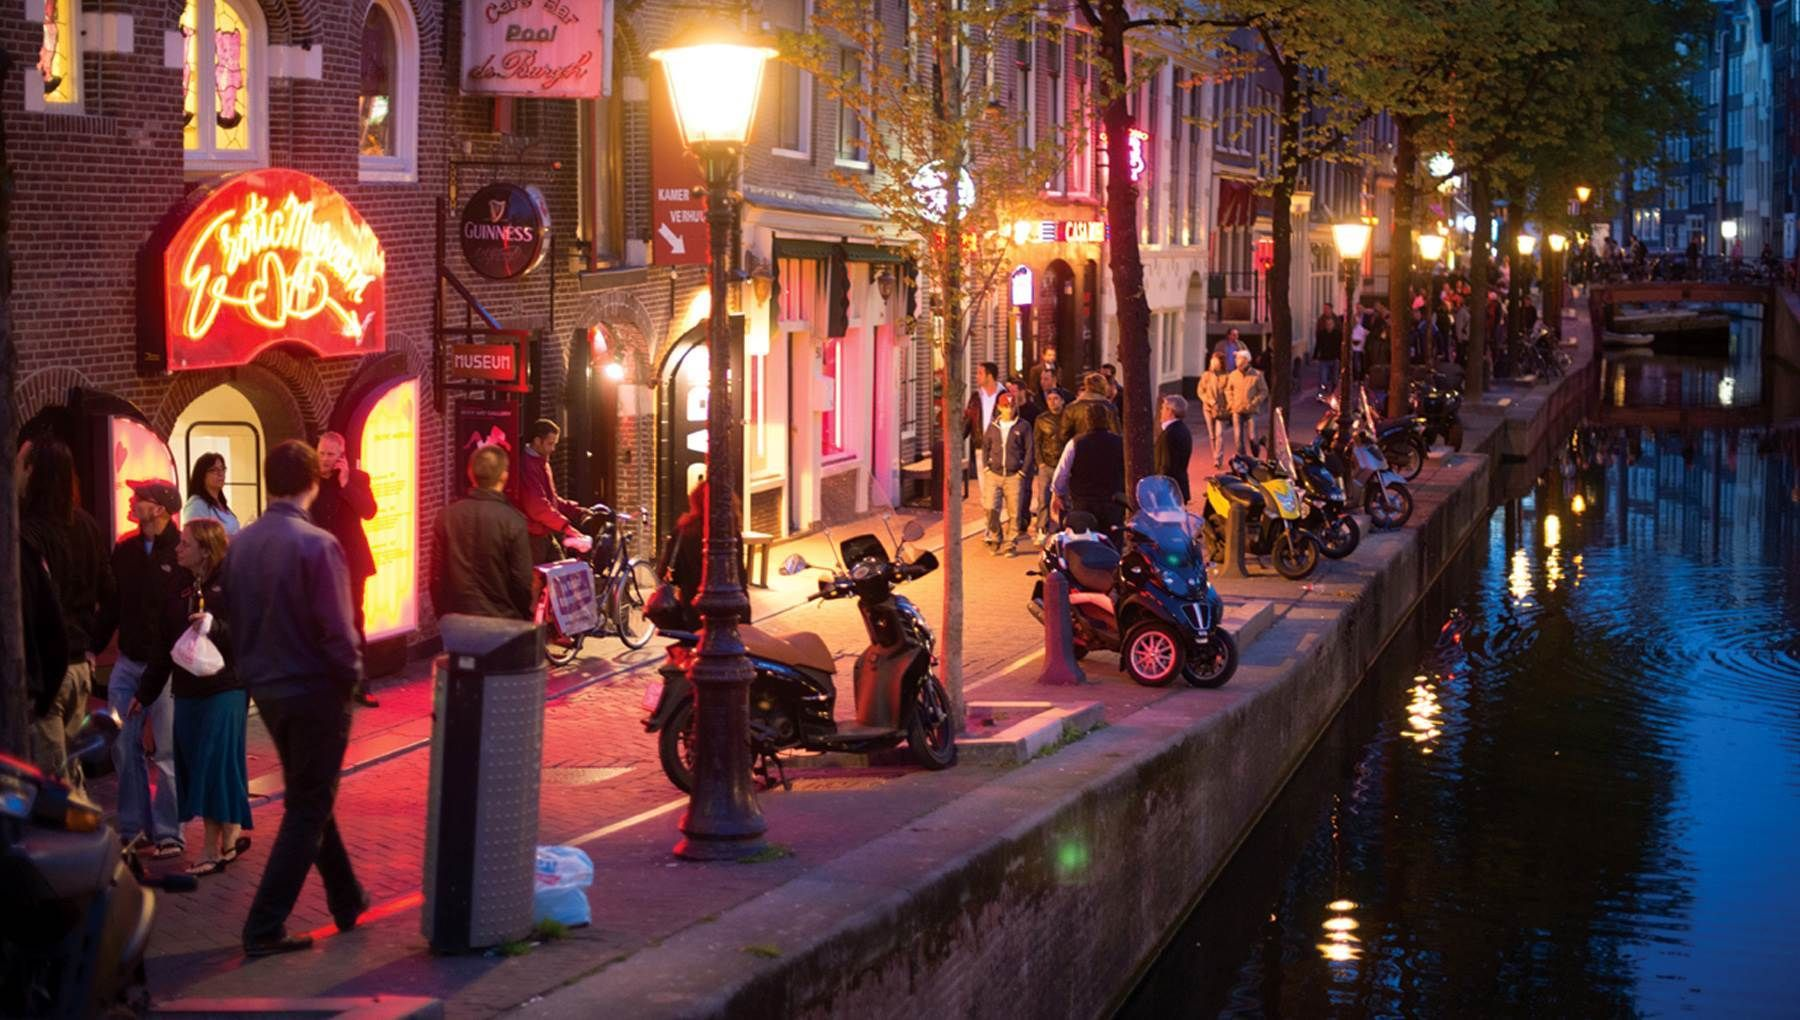 Did you know that the De Wallen area, or 'The Red Light District' is actually one of the safest areas of Amsterdam?